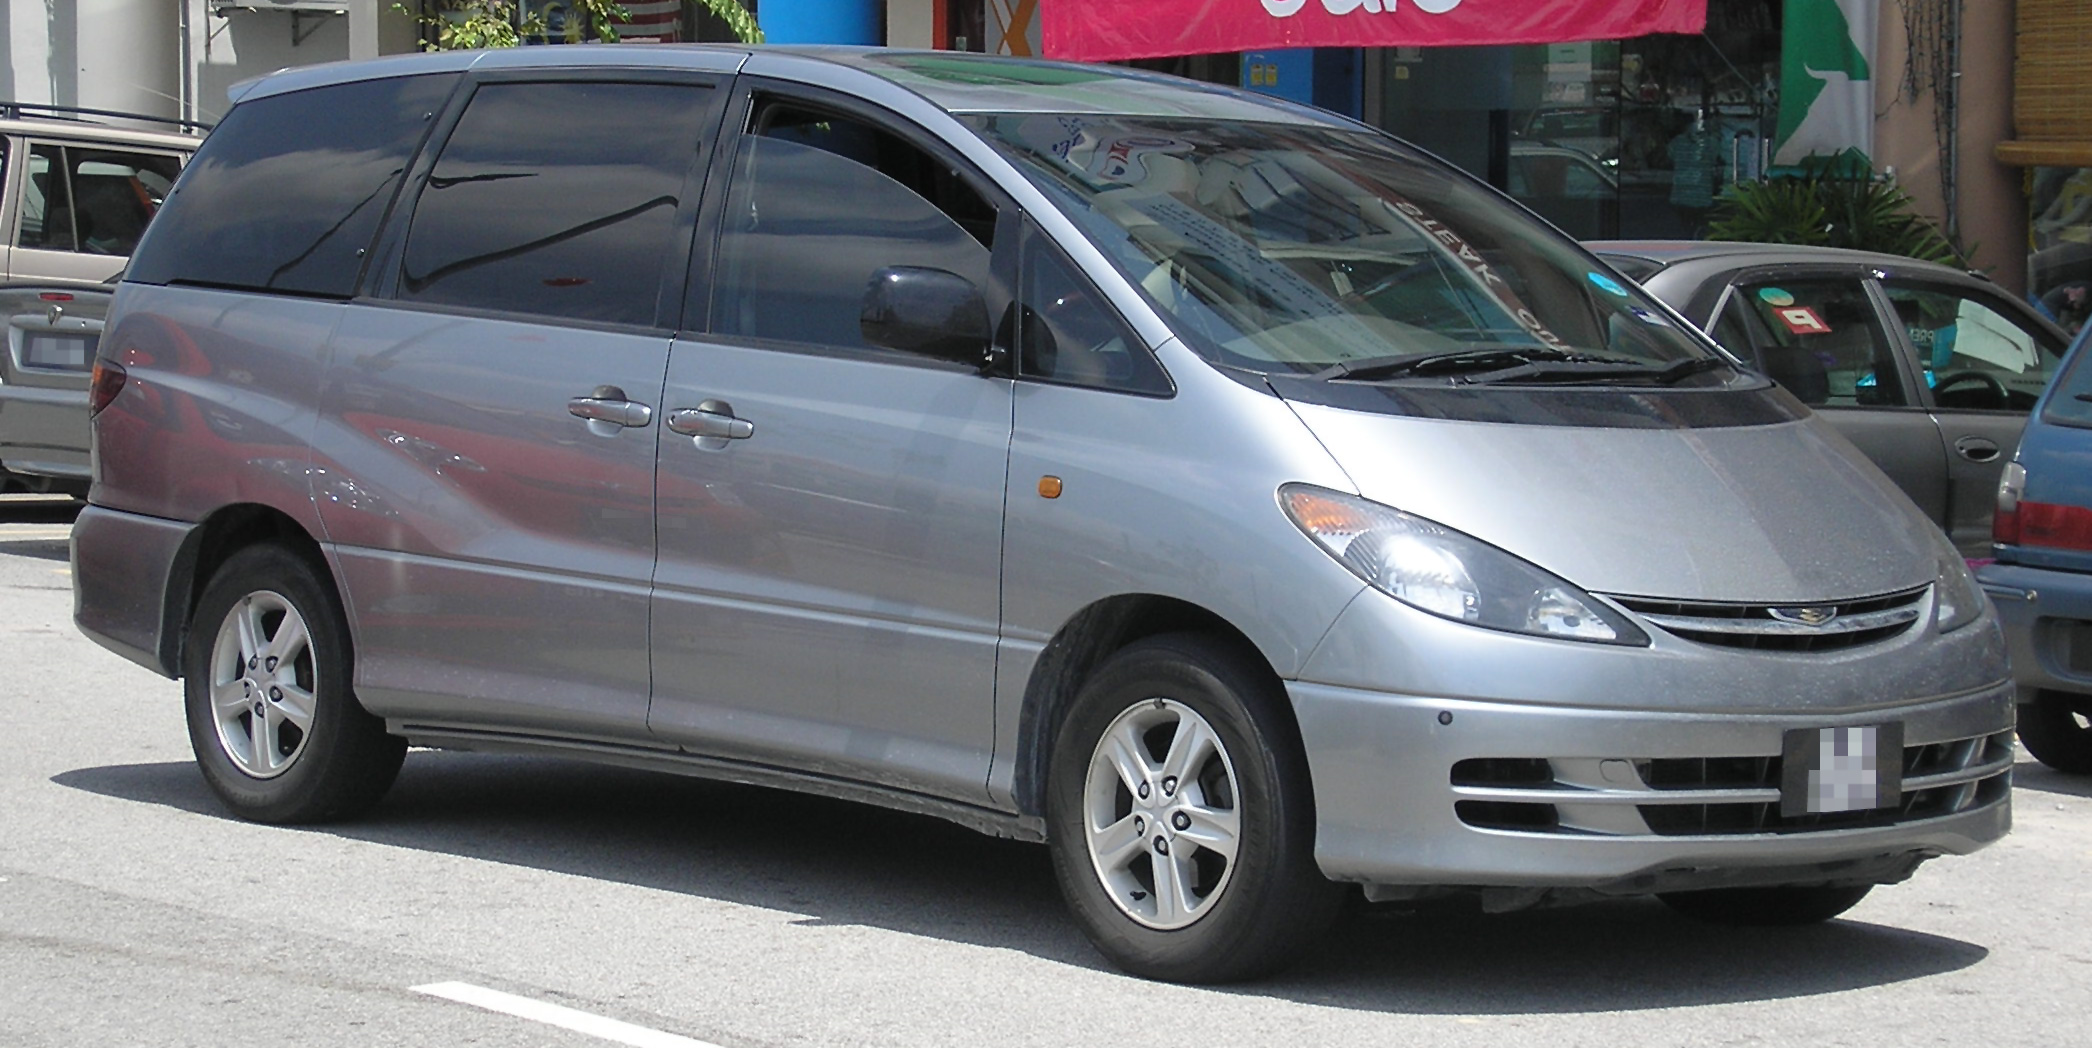 Build Your Toyota >> File:Toyota Estima (second generation) (front), Serdang.jpg - Wikimedia Commons